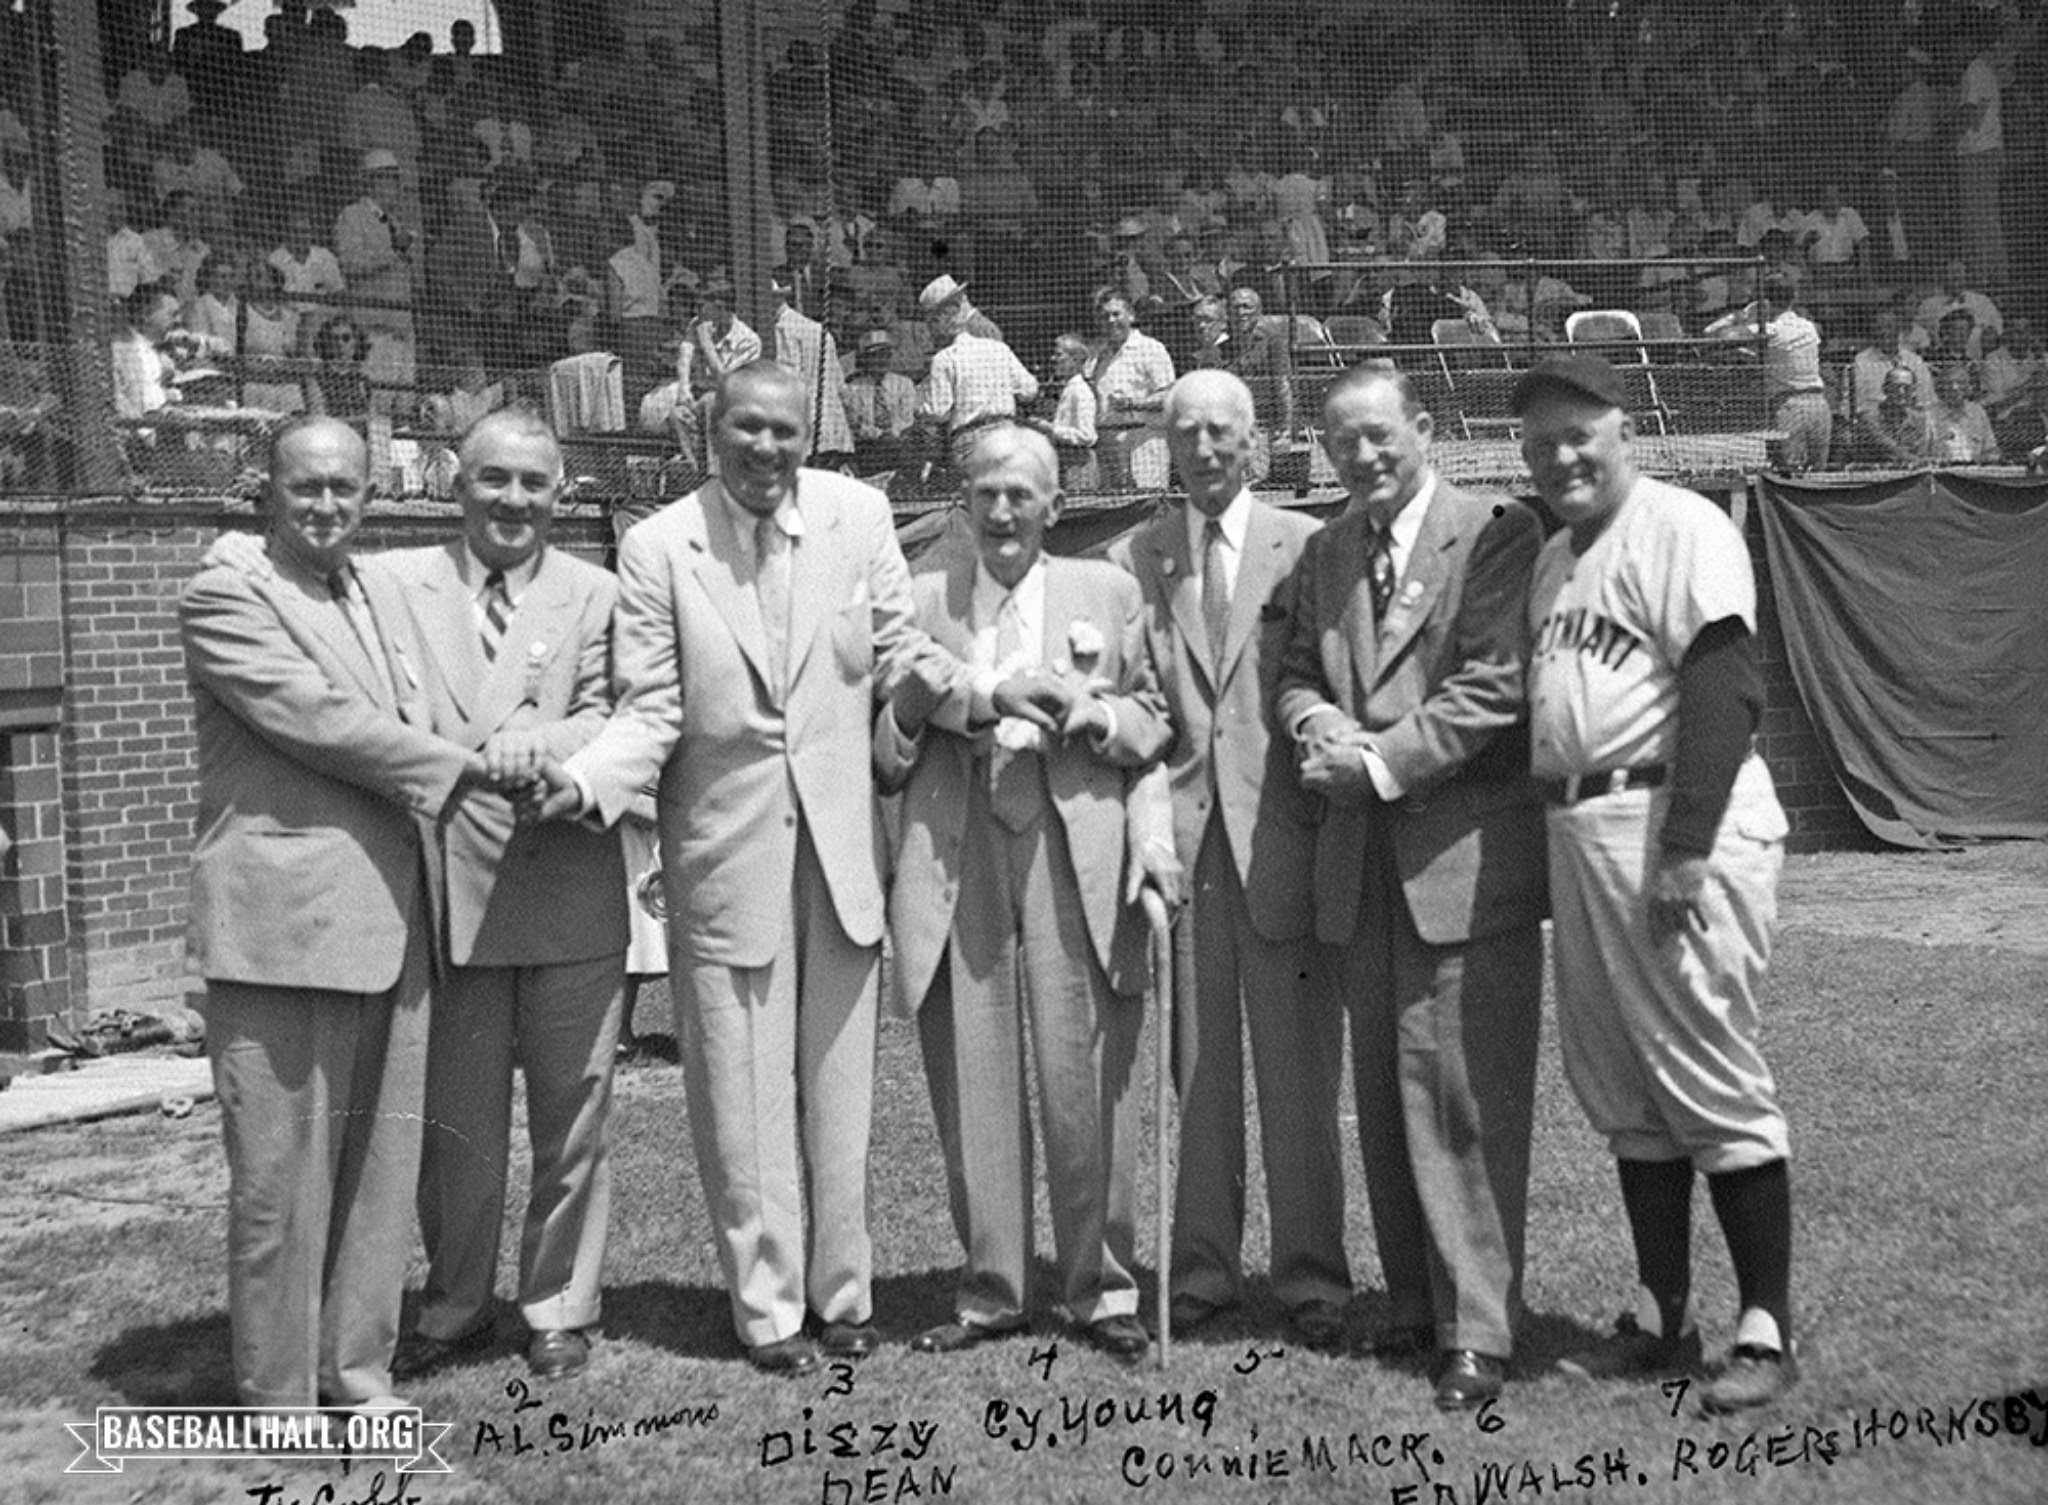 The Great Hall of Fame Induction Class of 1953!